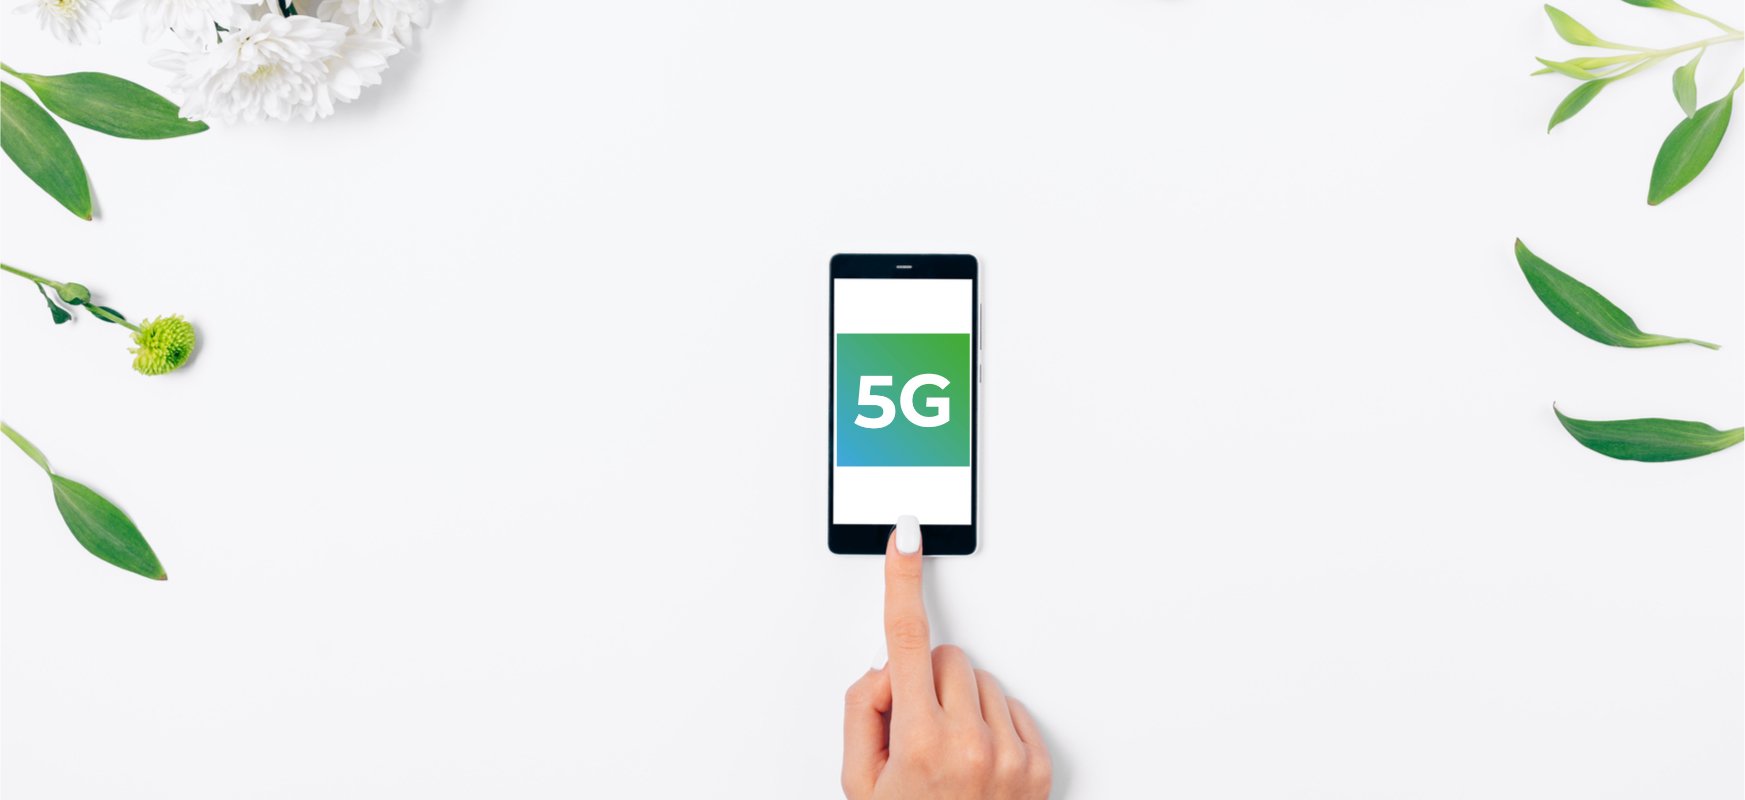 5G hasn t started well yet, and it s already a mess. What is the difference between 5Ge and 5G and 5G +?